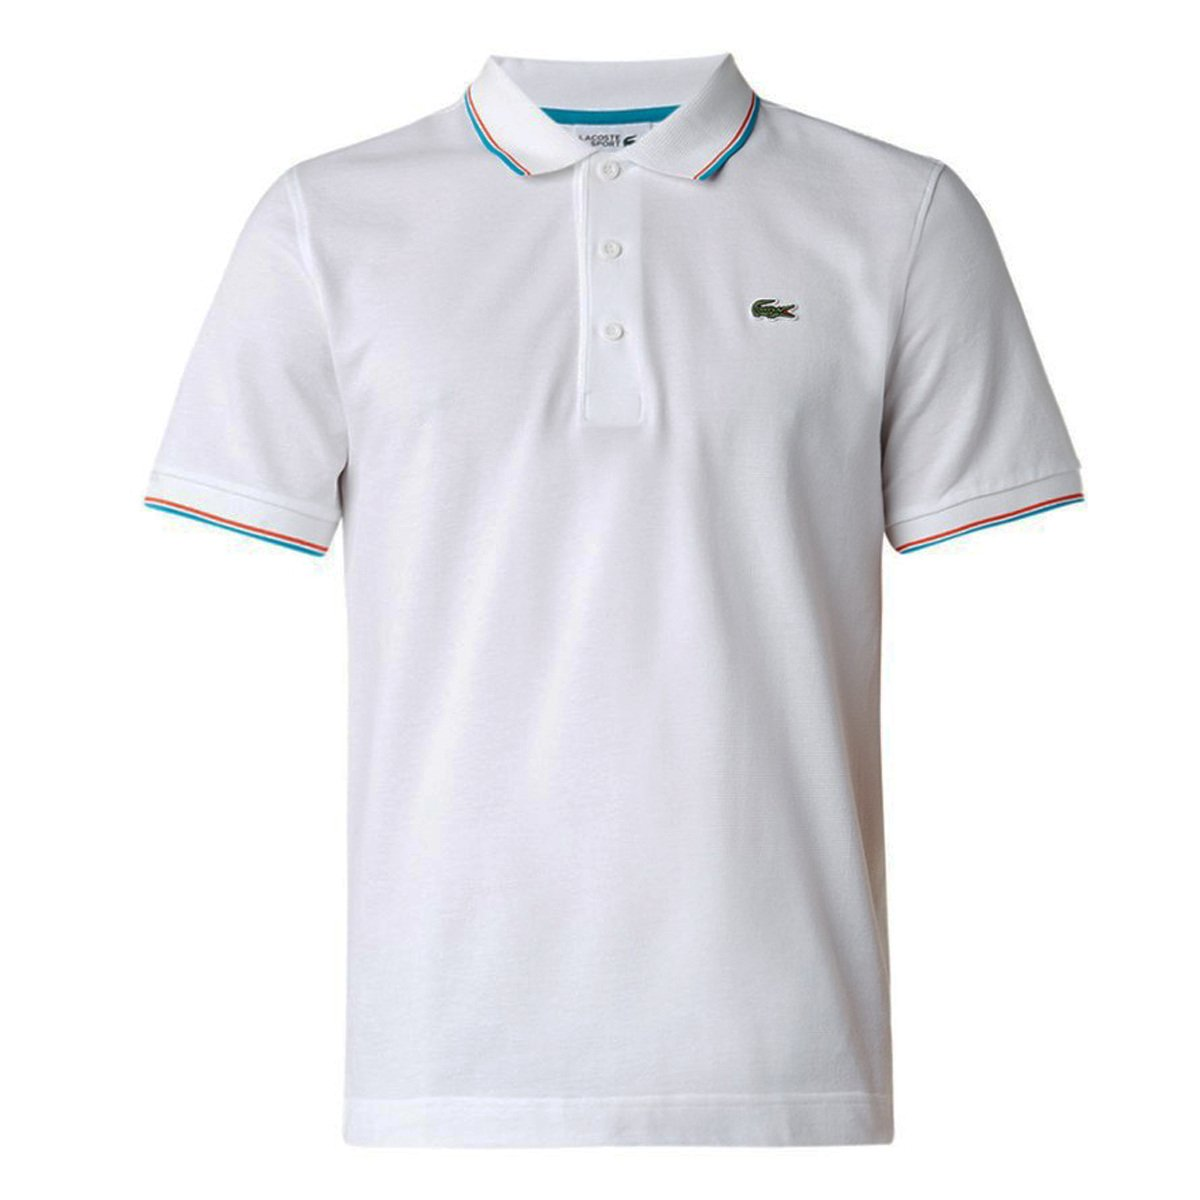 83d2872c7d3 Camisa Lacoste Polo Yh790021 Masculina